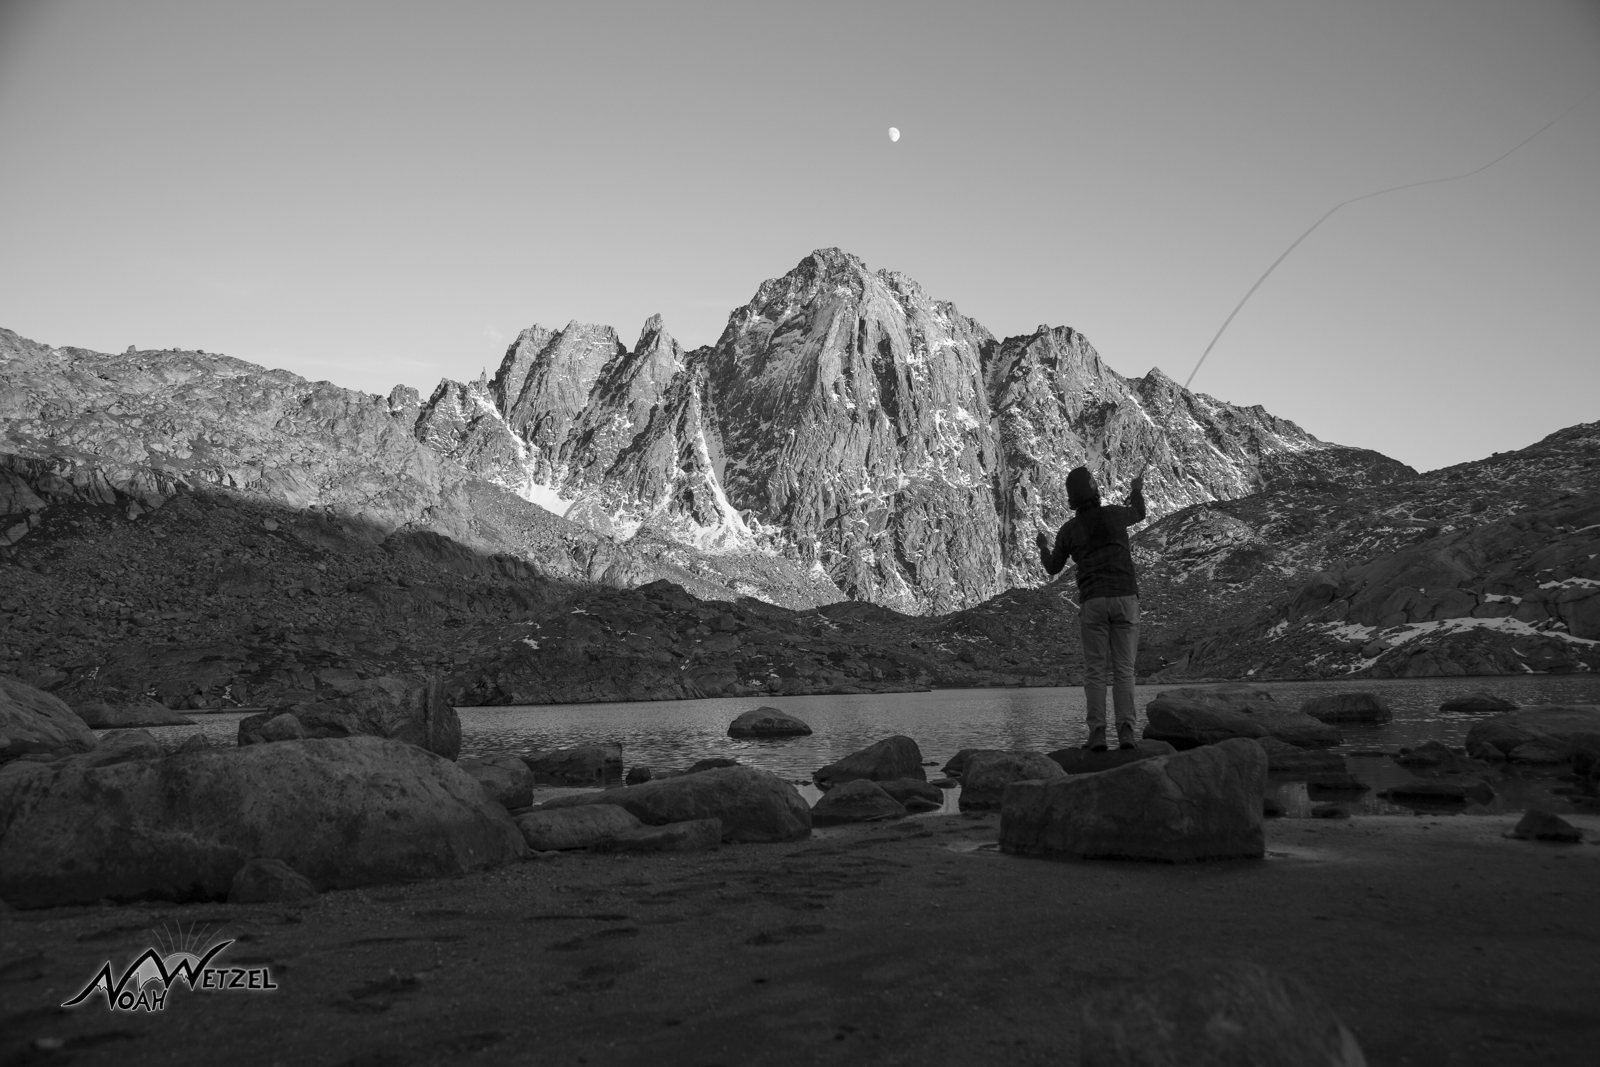 Self Portrait. Fly fishing...hoping for signs of life. Wind River Range. Wyoming